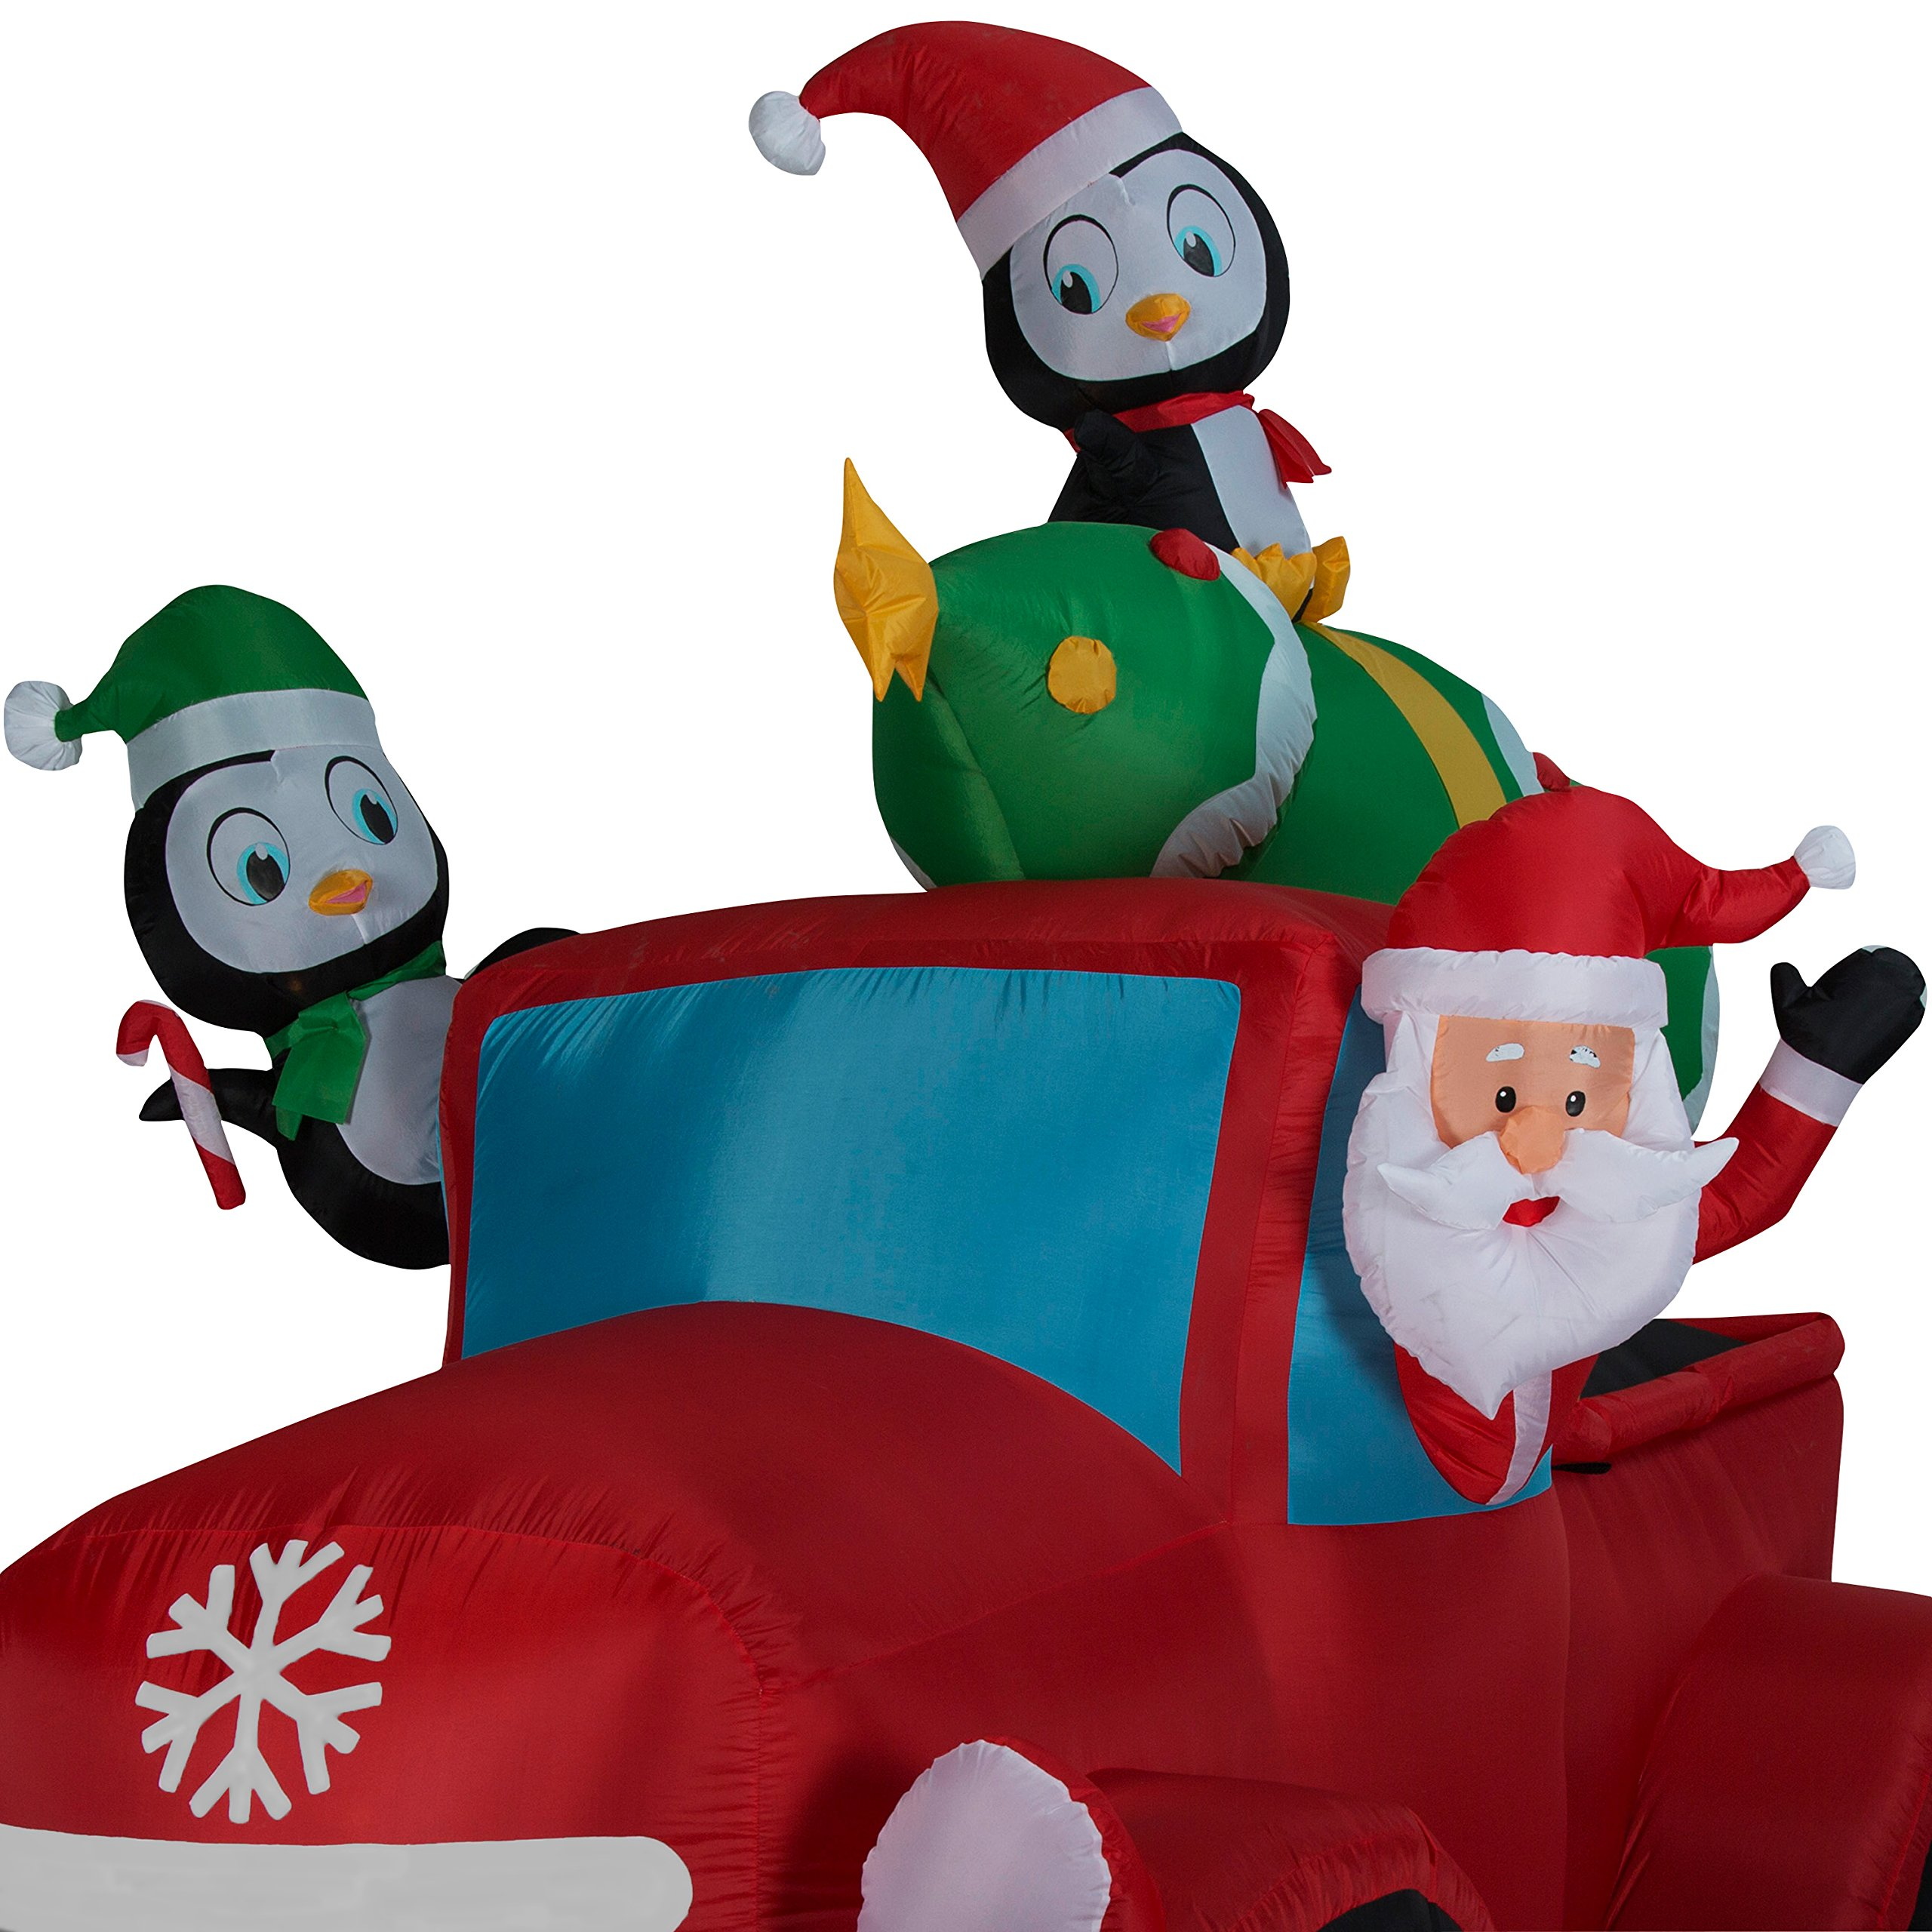 Santa Truck Retro with Christmas Tree on Roof Airblown Inflatable 8ft by Holiday Time (Image #2)